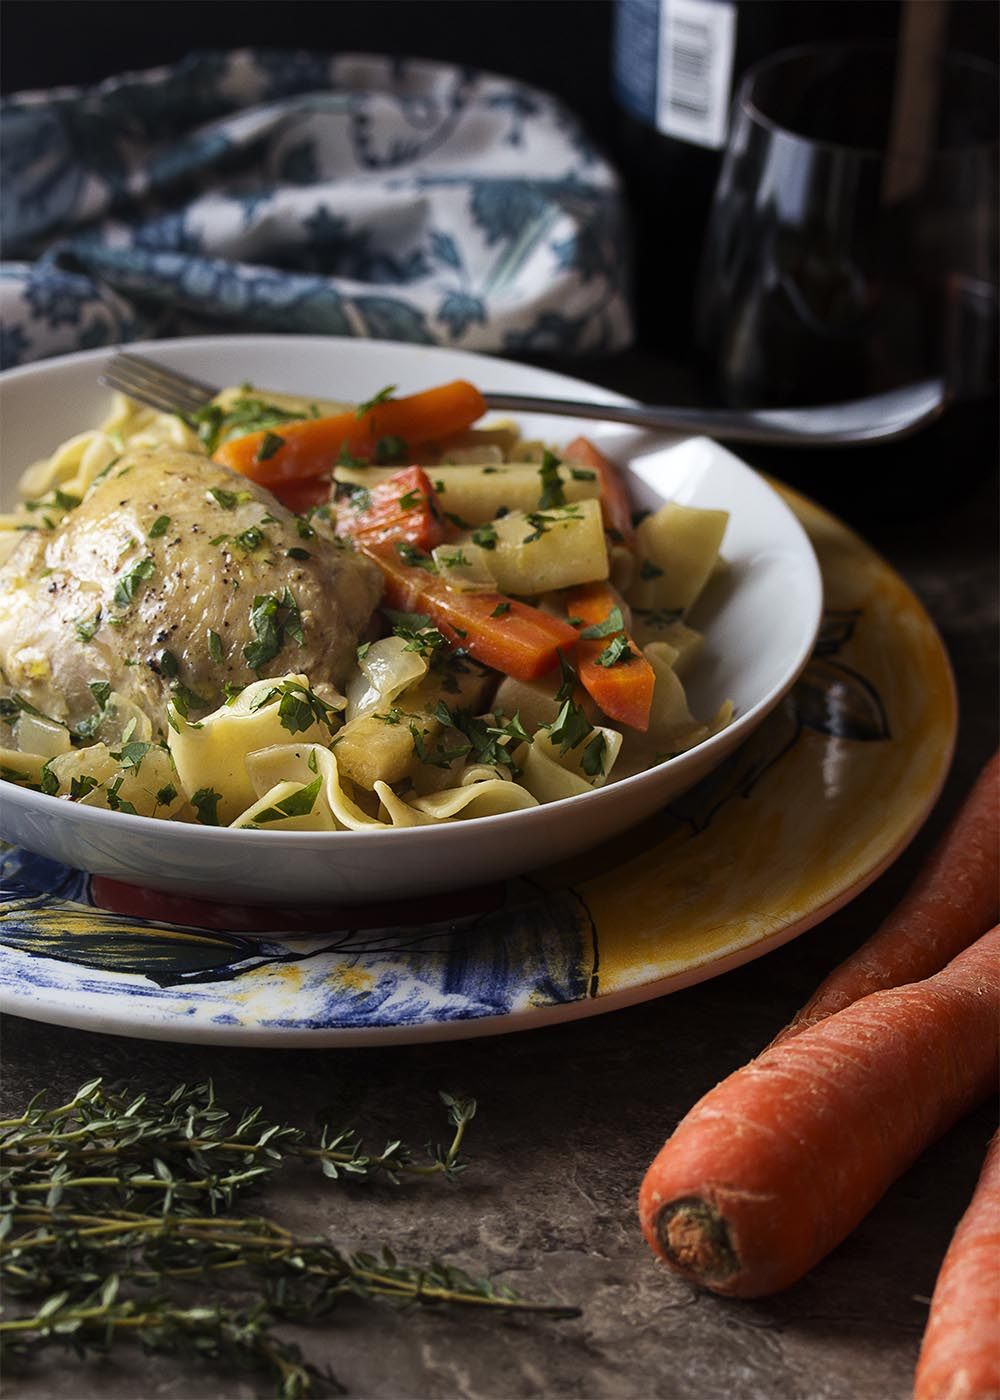 French chicken fricassee in a bowl with root vegetables over a bed of egg noodles.